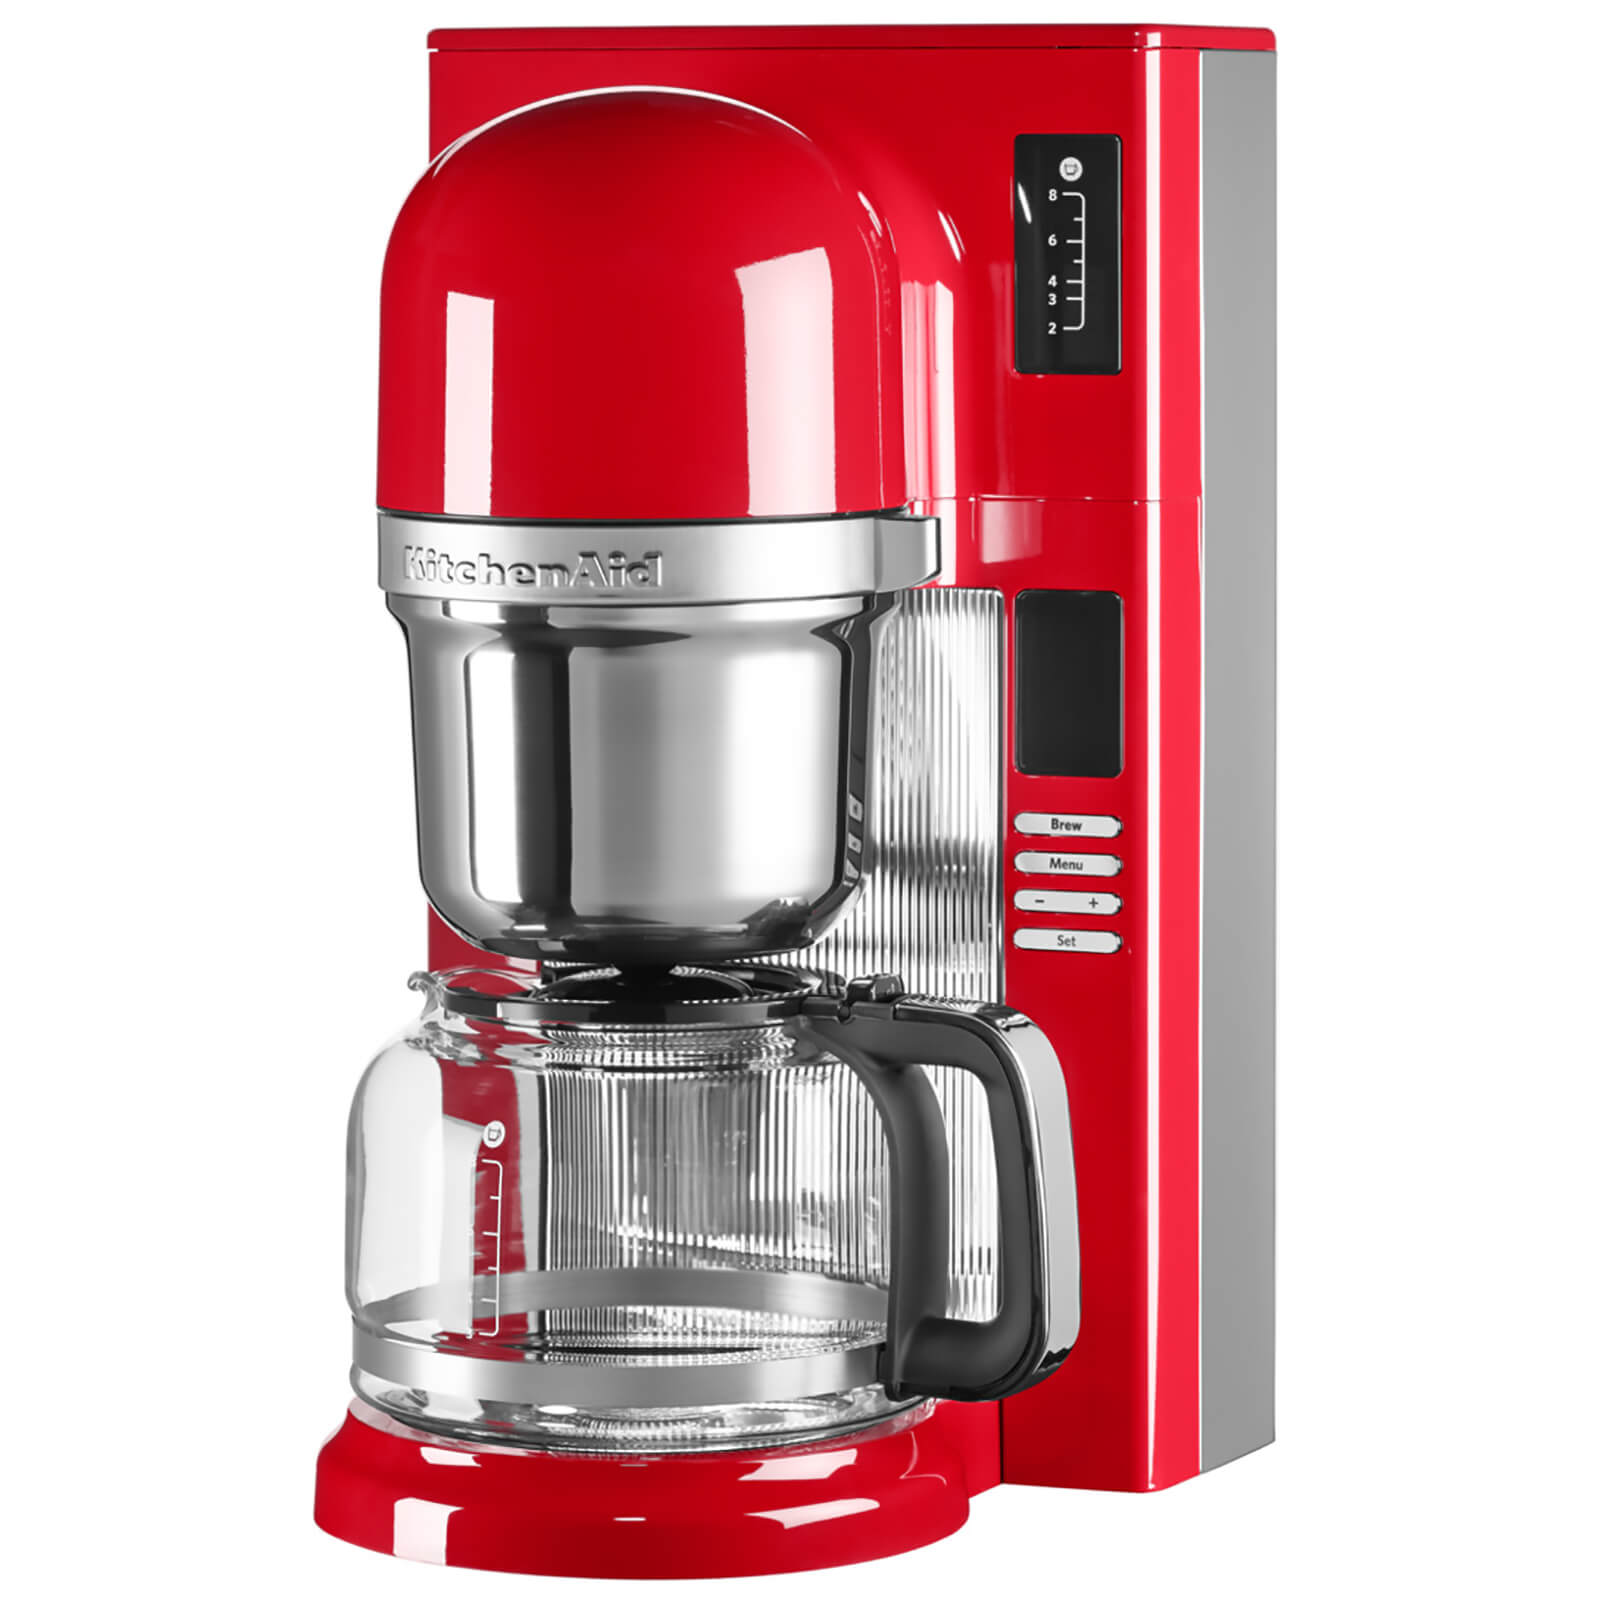 Kitchenaid 5kcm0802ber Pour Over Coffee Maker Empire Red